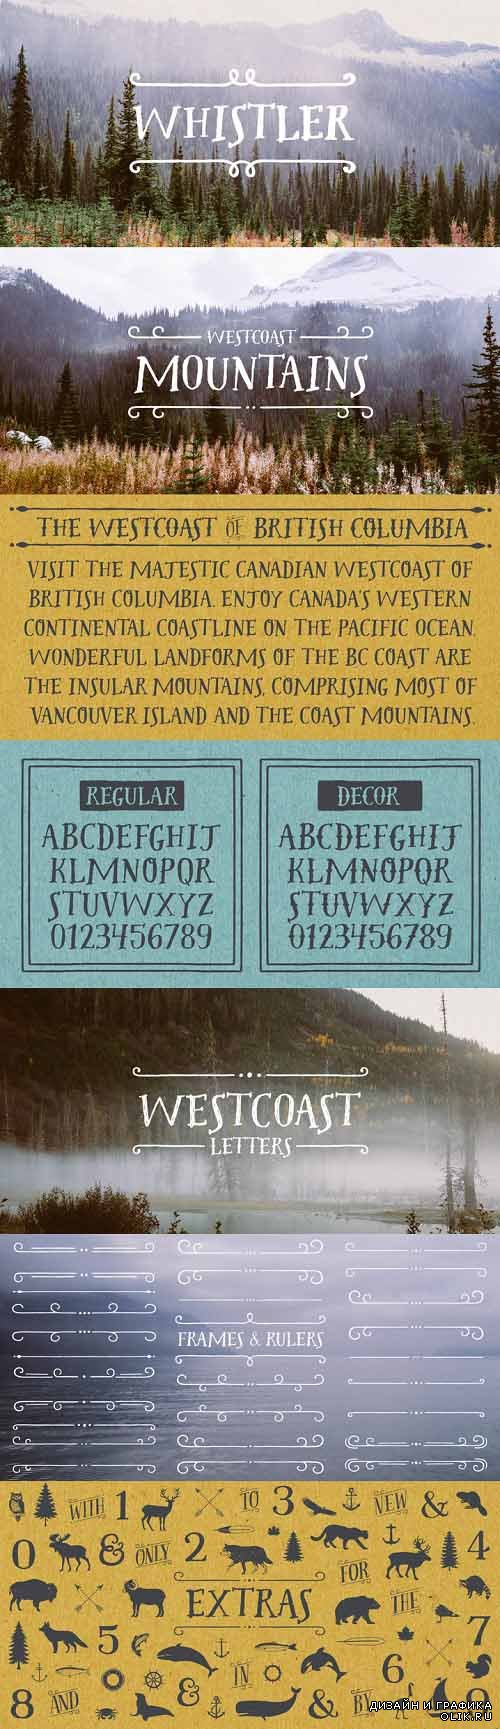 Westcoast Letters Font Style